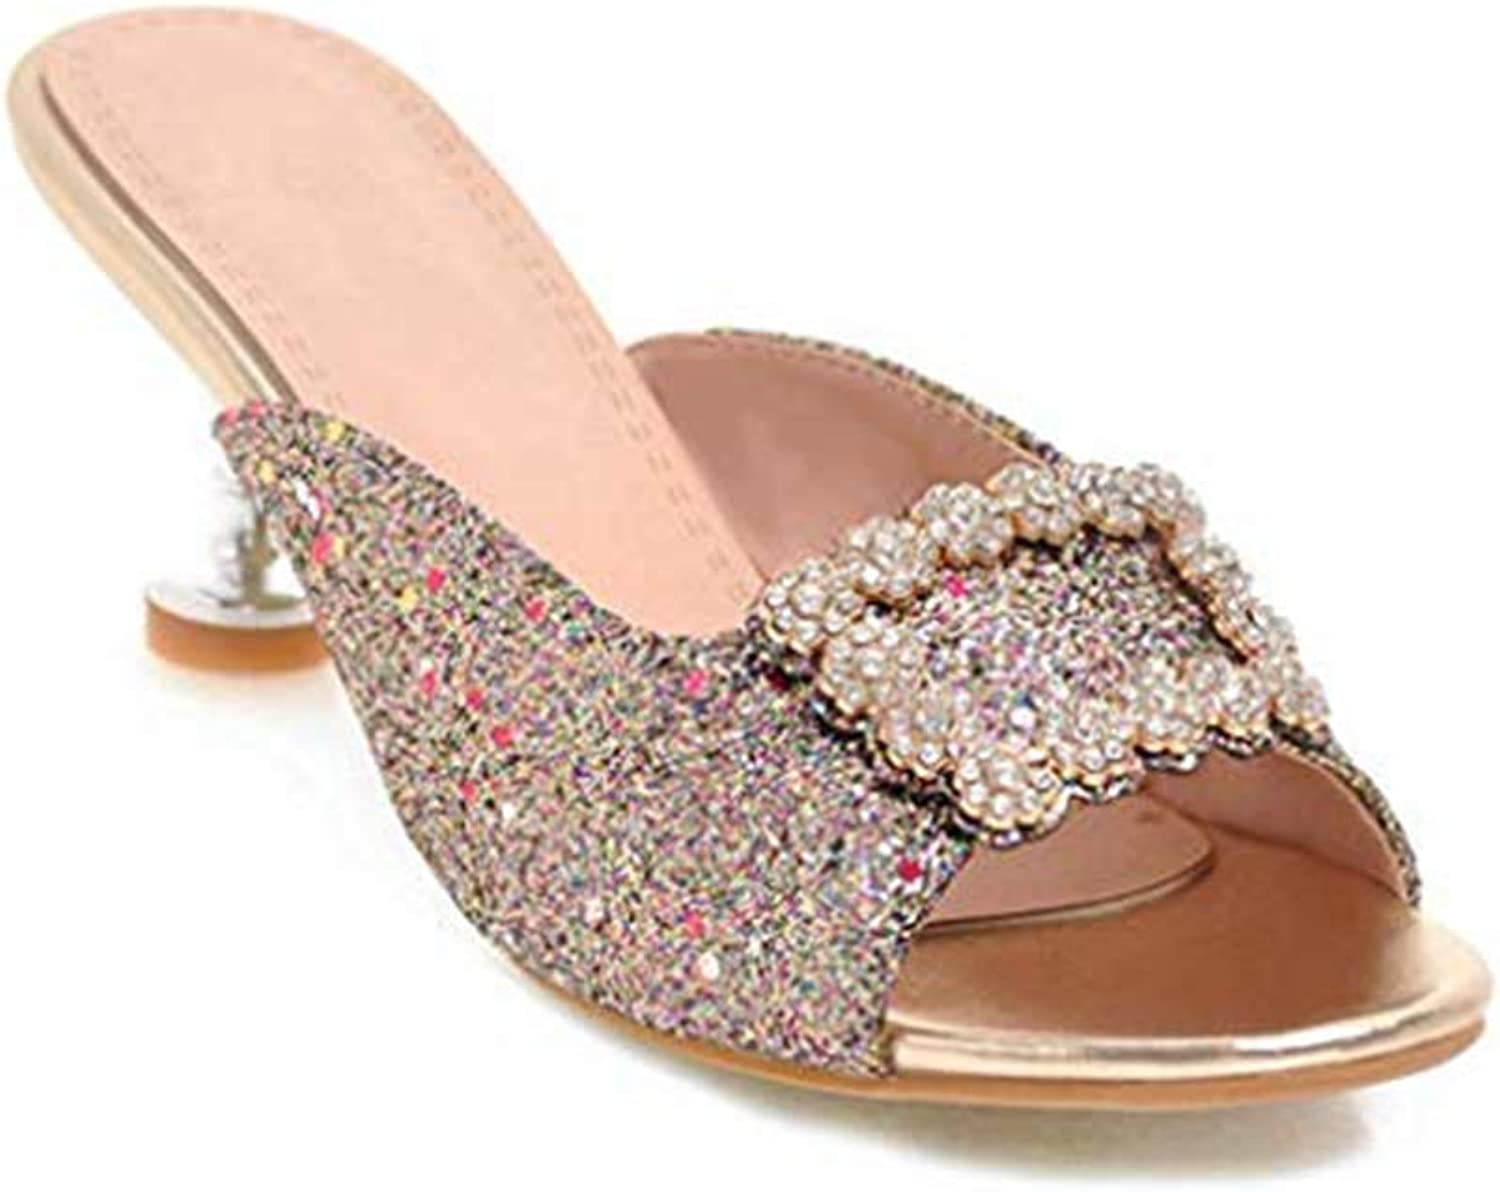 Women's Rhinestone Flowers Sparkle Glitter Heels Slides Sandals Bling Slip On Dress Mules Clogs Pumps shoes Sexy Girl Leg Length Fashion Leg Length Girl Reasing golden 7 M US Sandals shoes